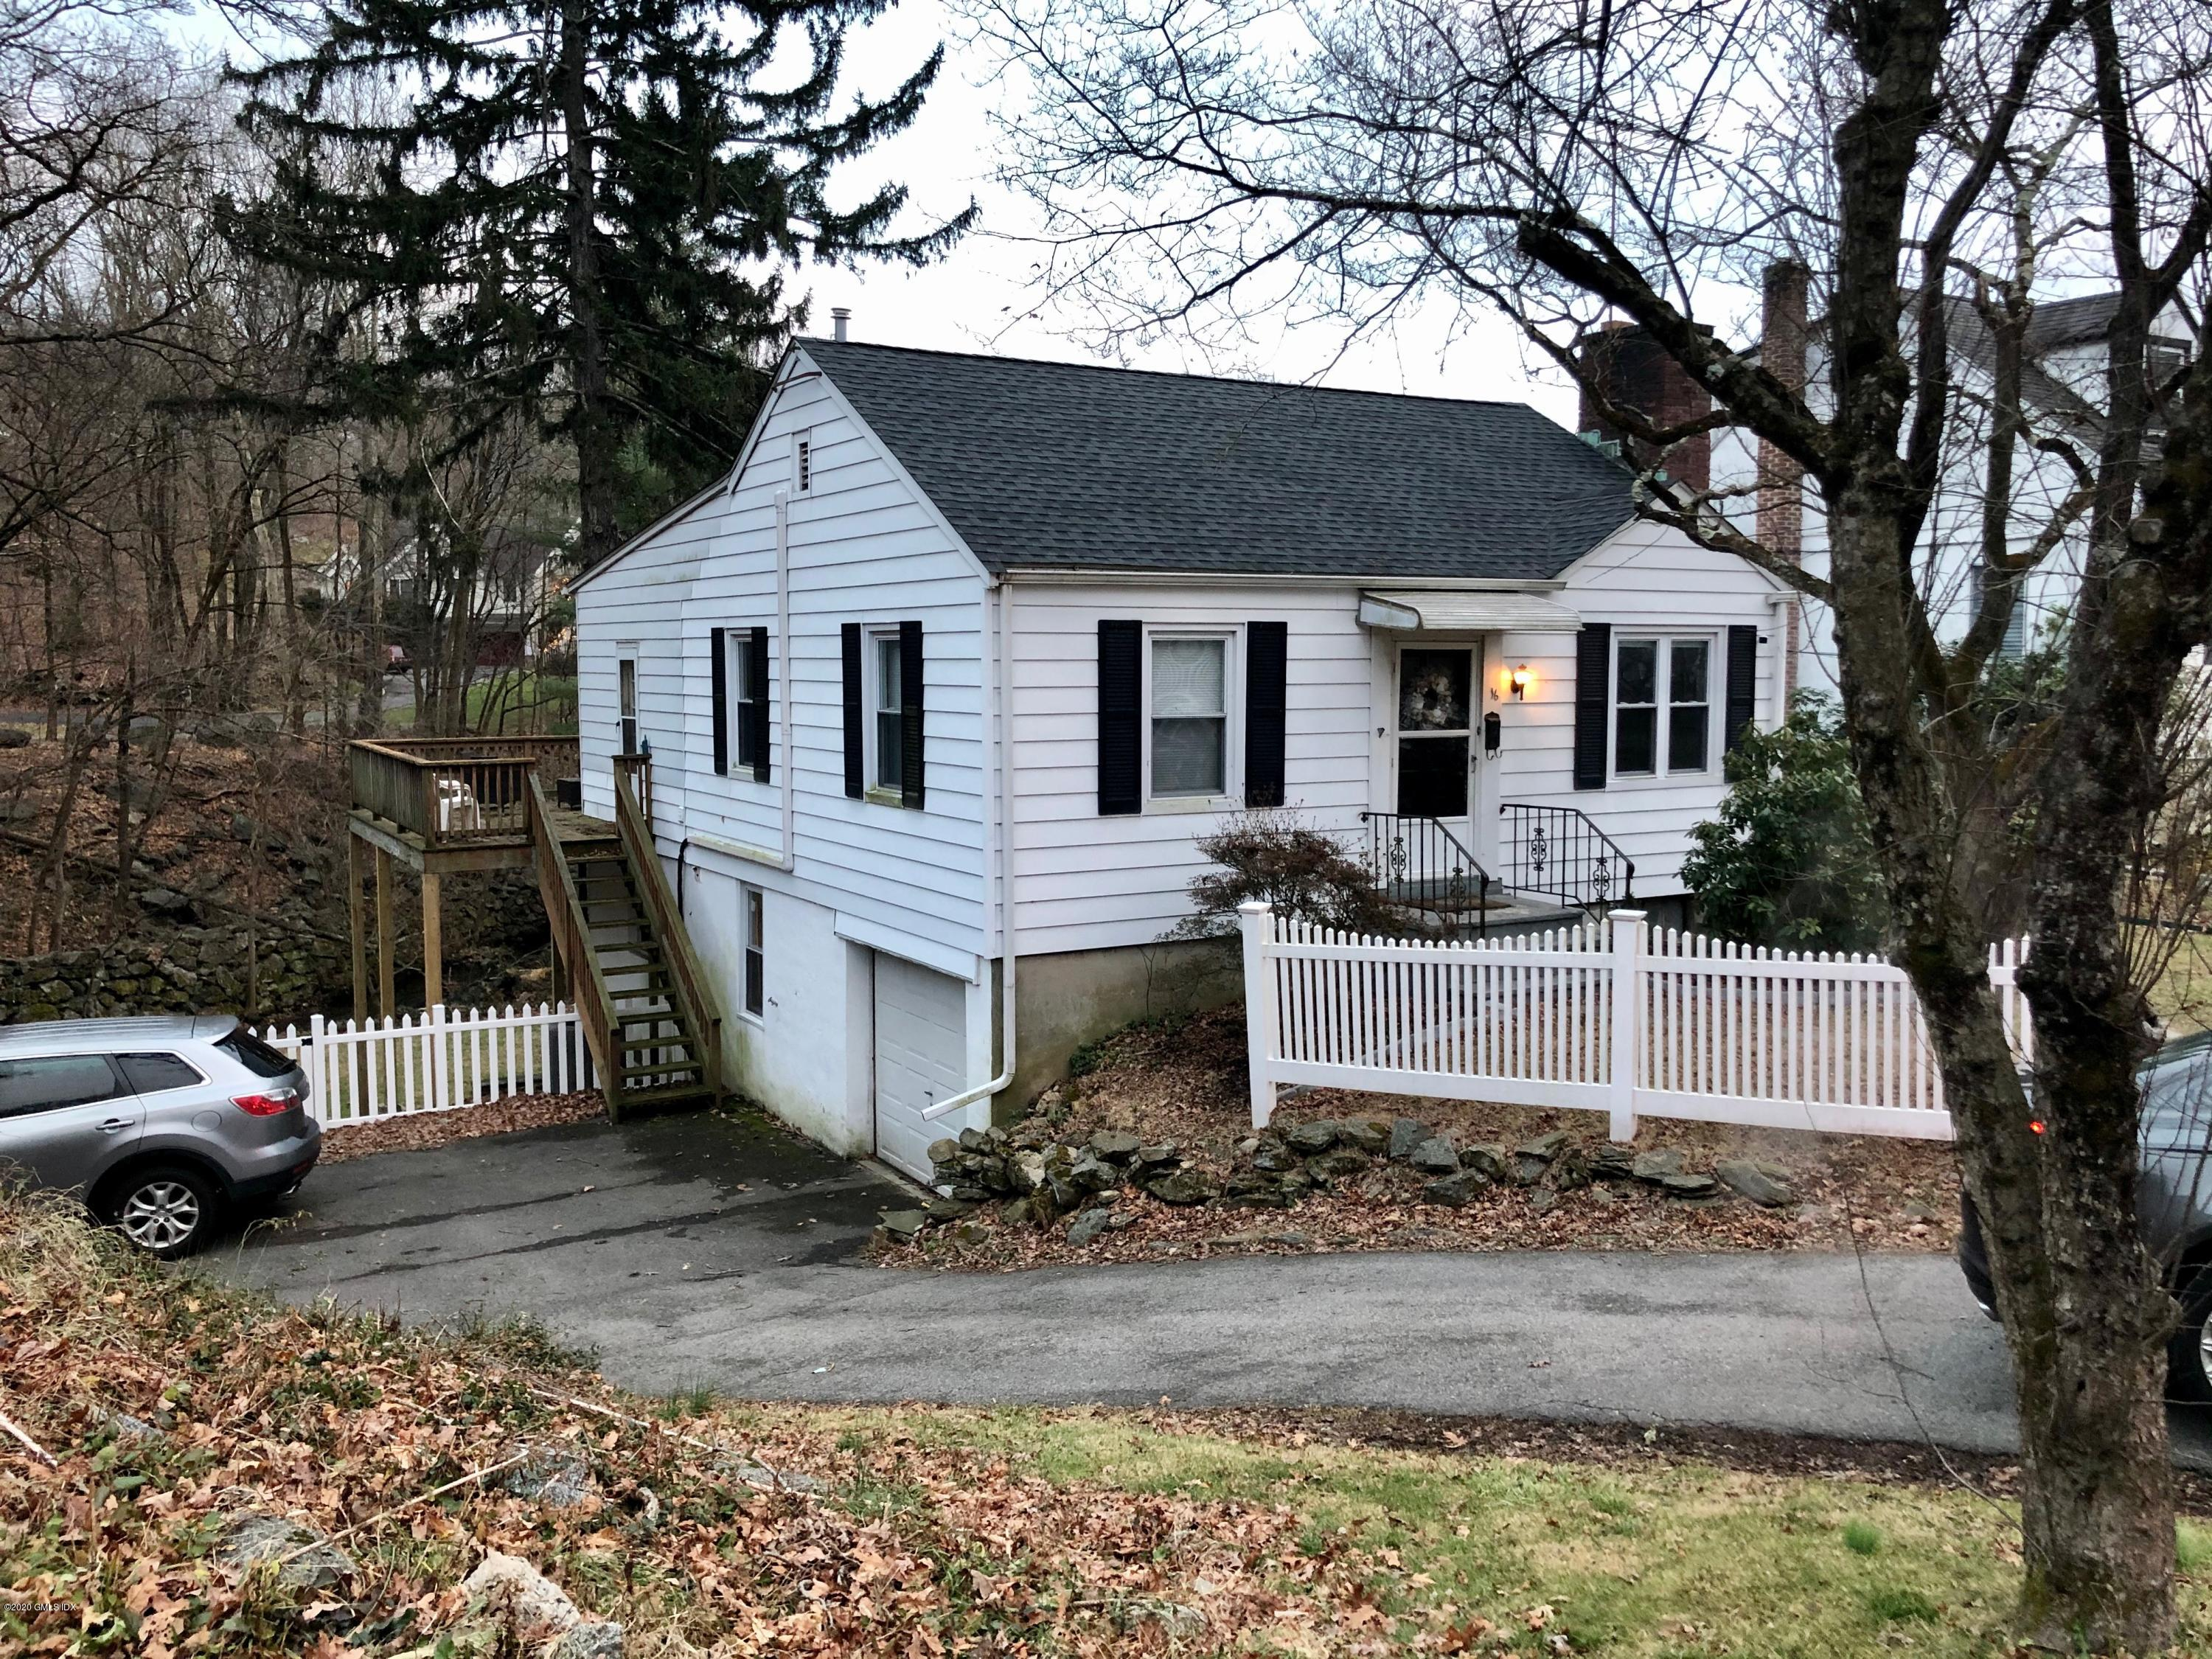 16 Concord Street,Greenwich,Connecticut 06831,5 Bedrooms Bedrooms,3 BathroomsBathrooms,Single family,Concord,108564